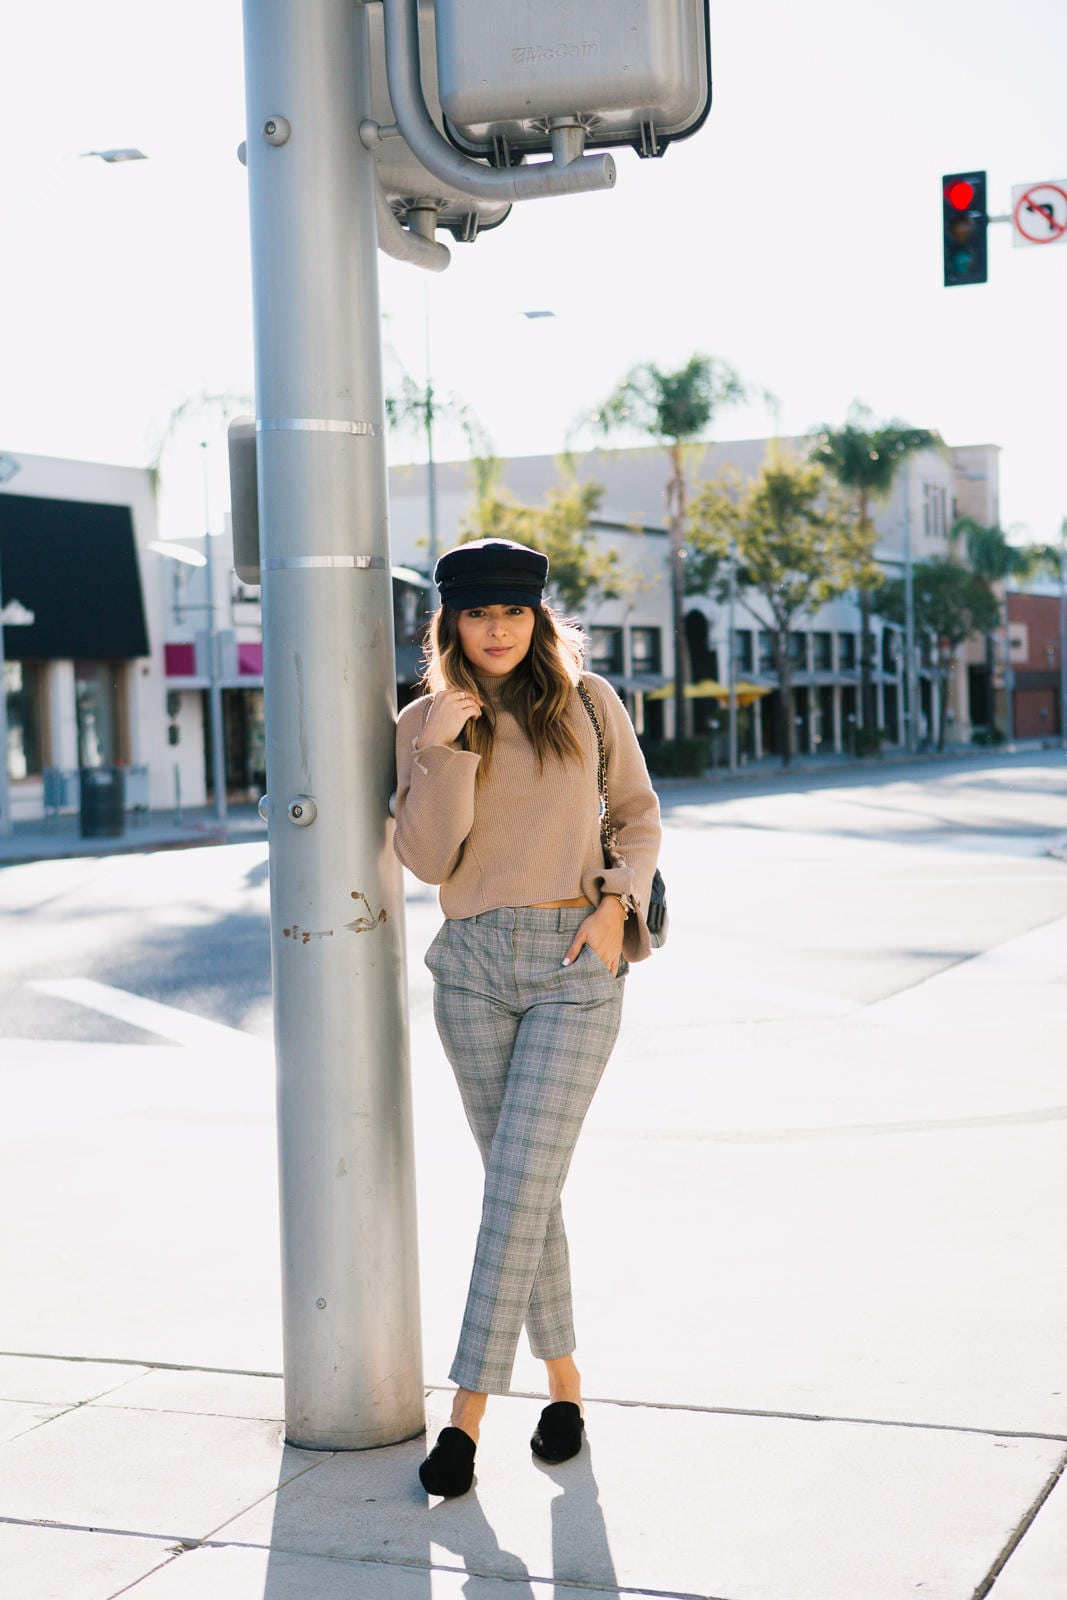 Styling Plaid Pants 2 Ways - The Girl From Panama